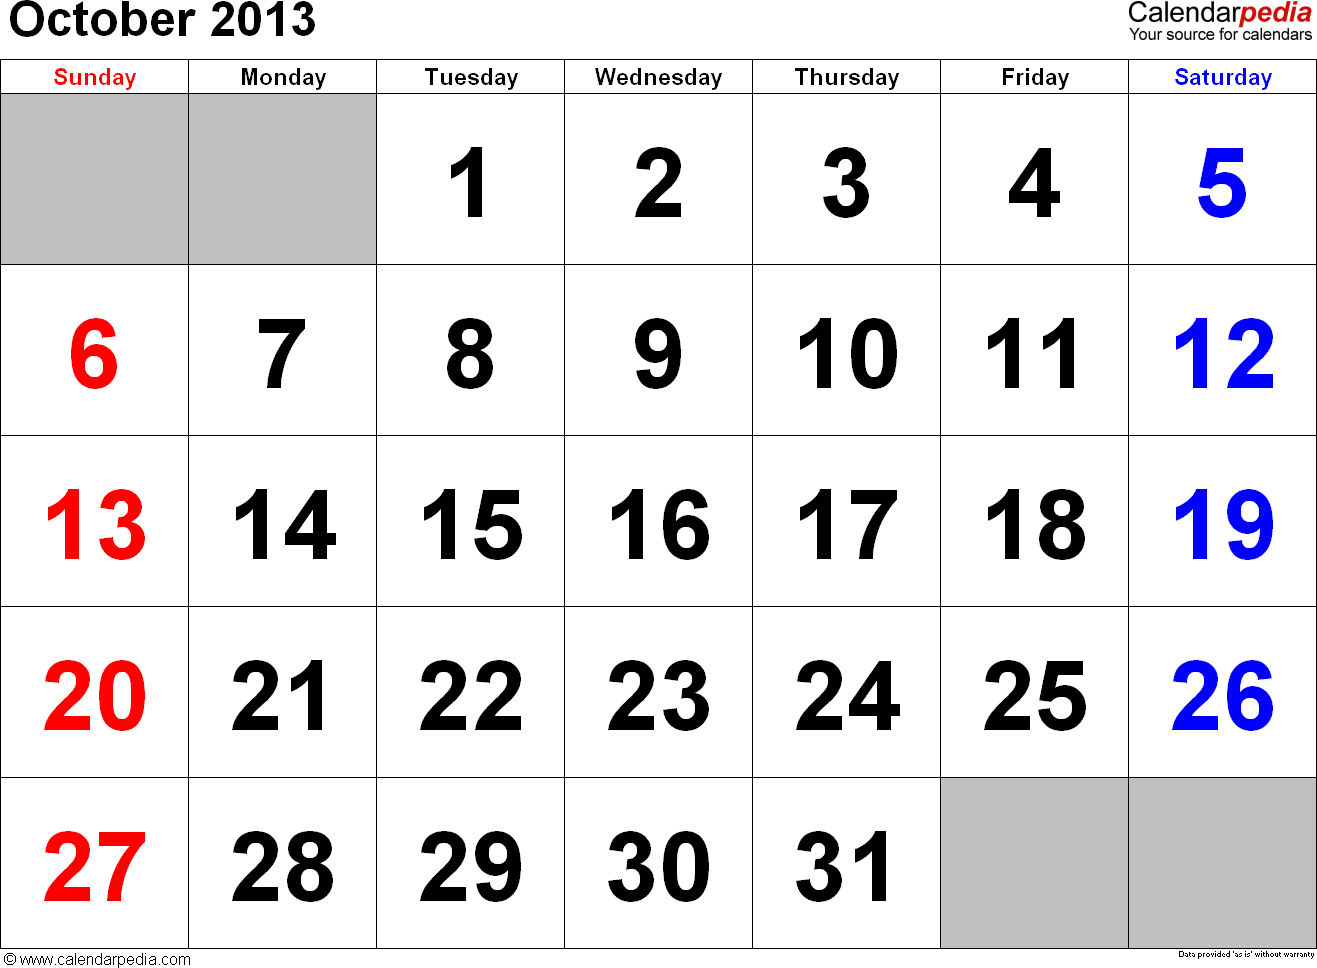 October 2013 calendar, landscape orientation, large numerals, available as printable templates for Word, Excel and PDF